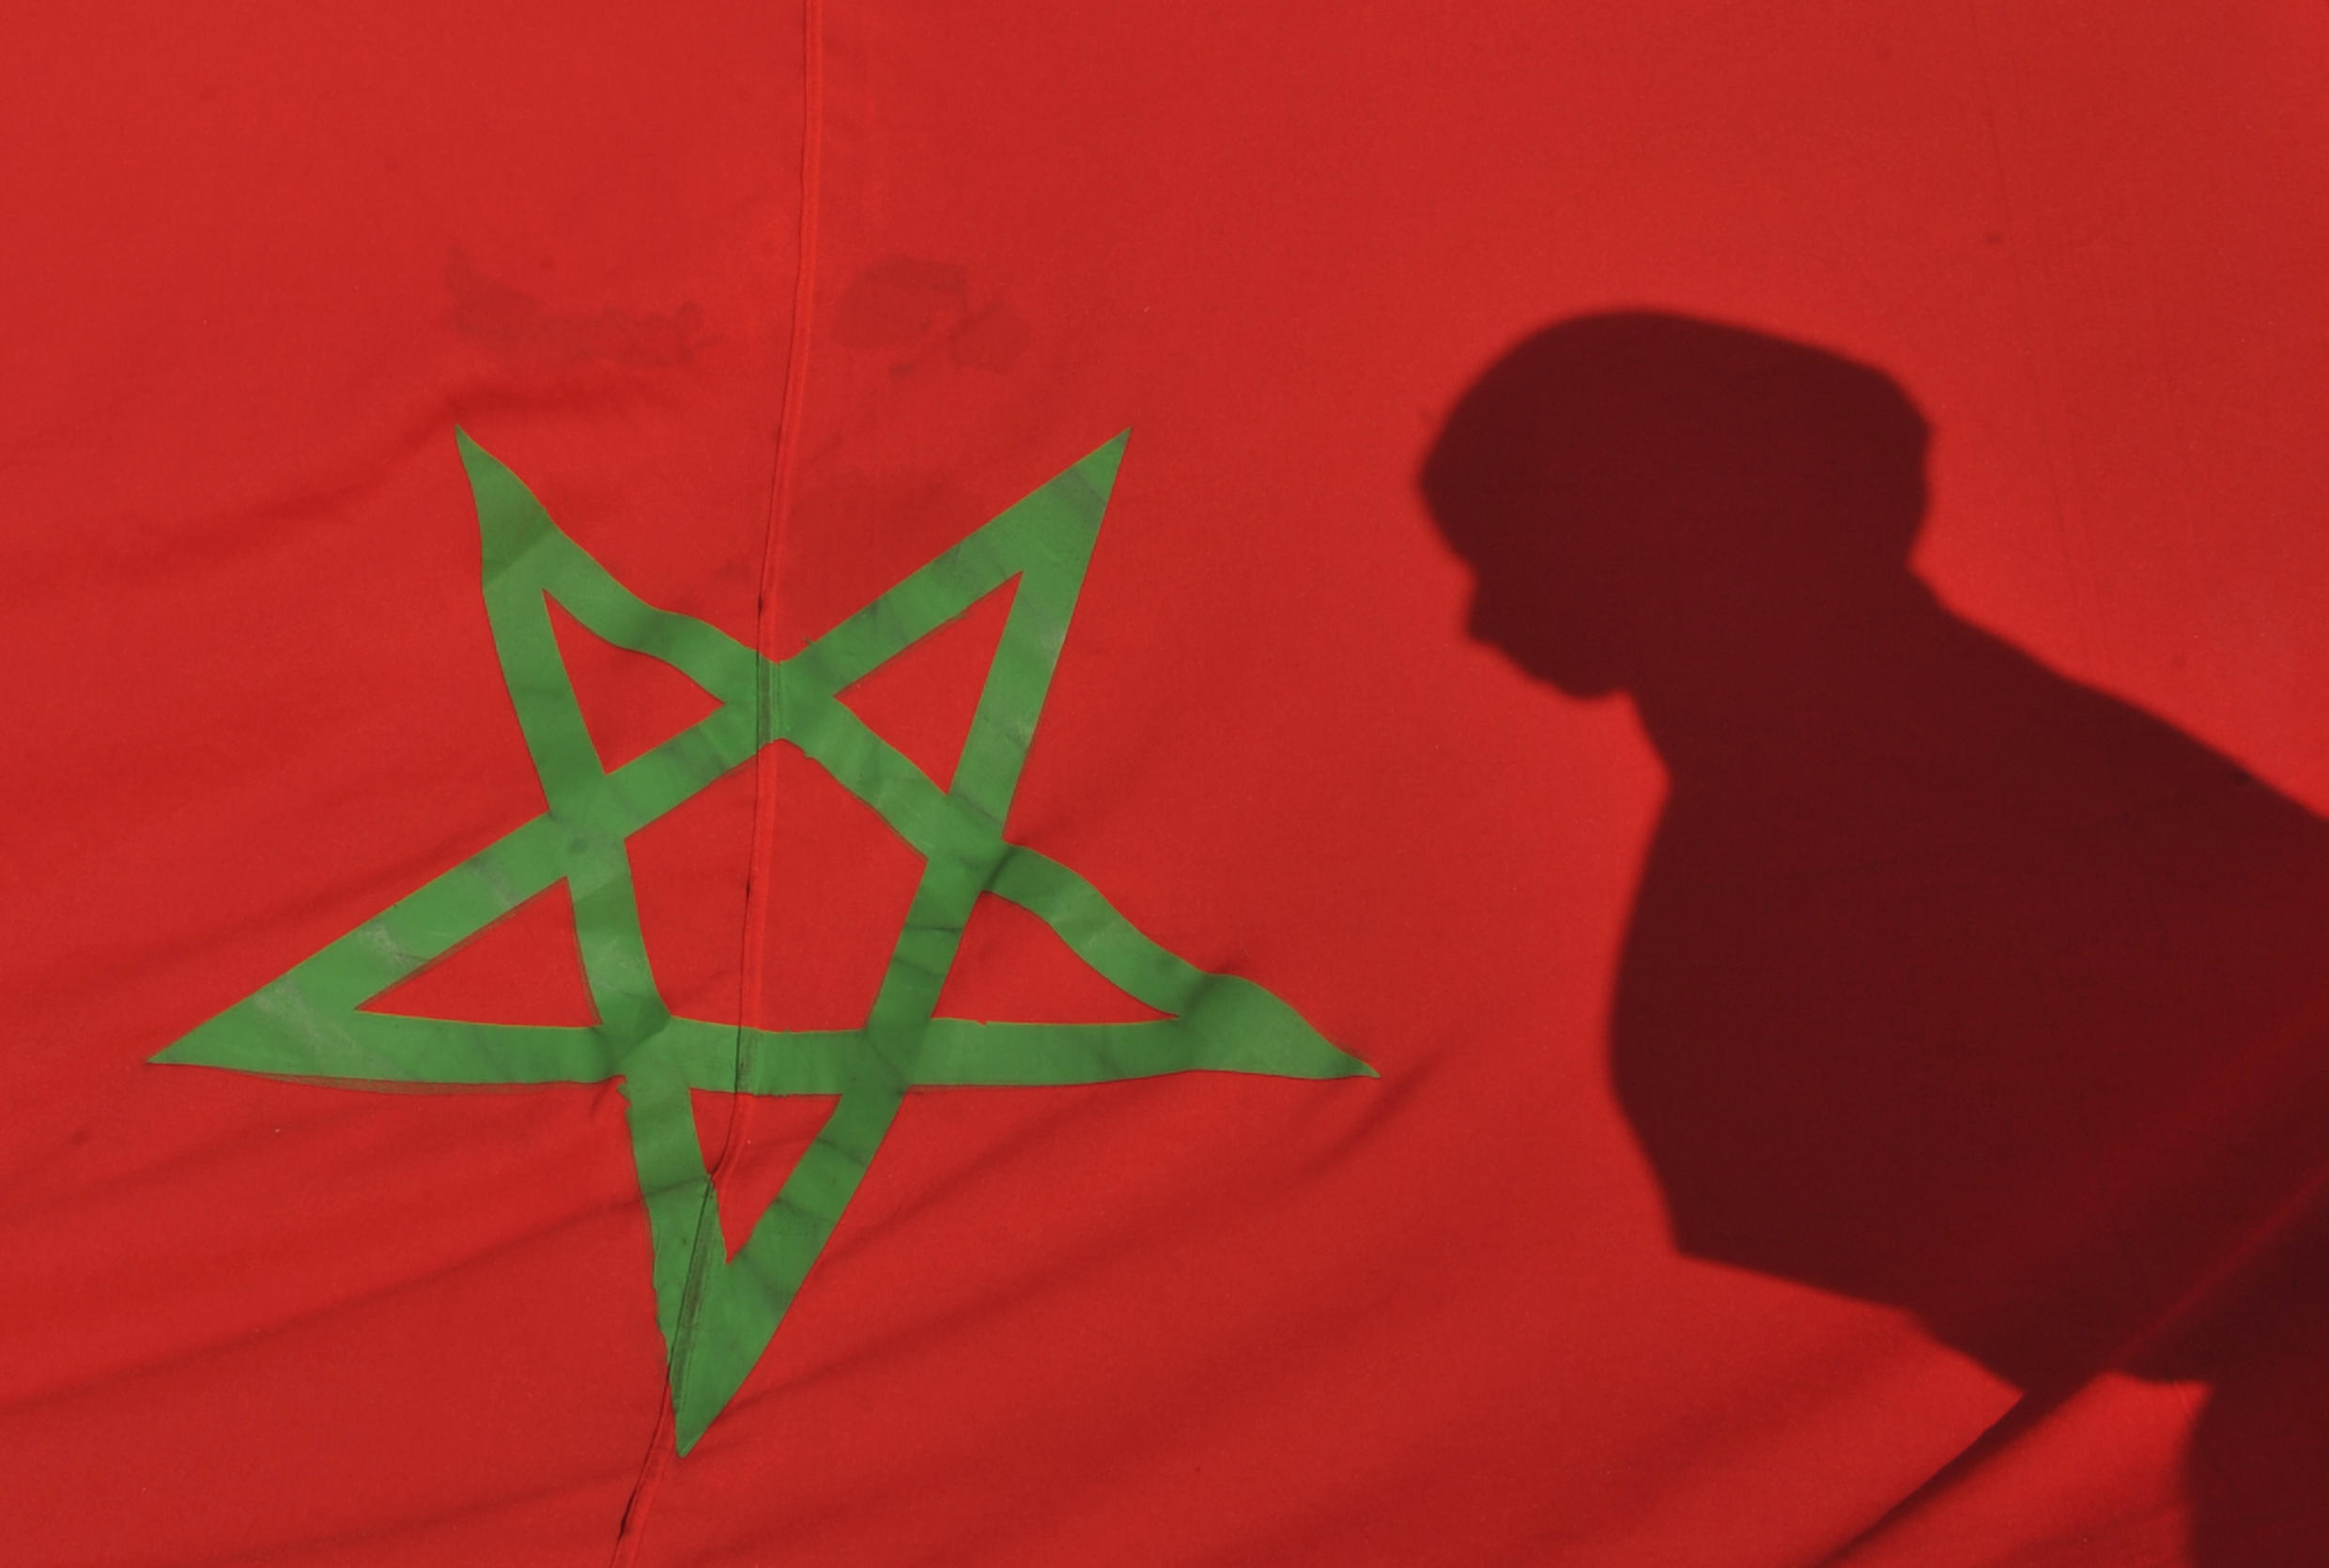 The Polisario Front has warned it will regard a three-decade-old ceasefire with Morocco as over if Rabat moves troops into the buffer zone.